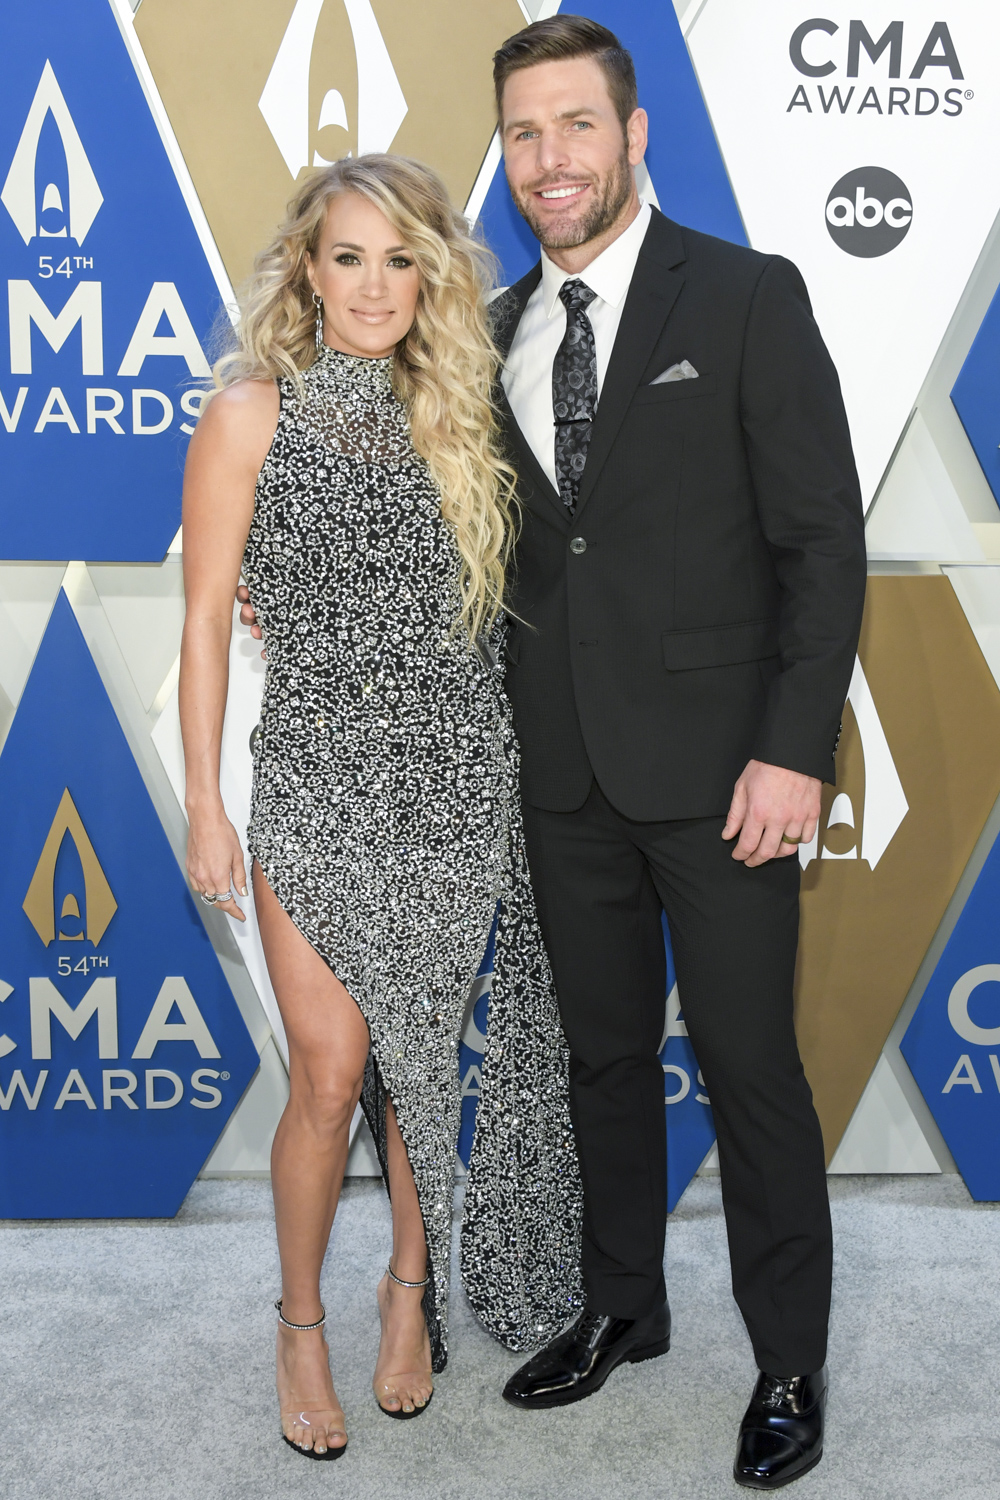 Carrie Underwood and Mike Fisher 'Were Really Good at Being Together All Day' During COVID Lockdown